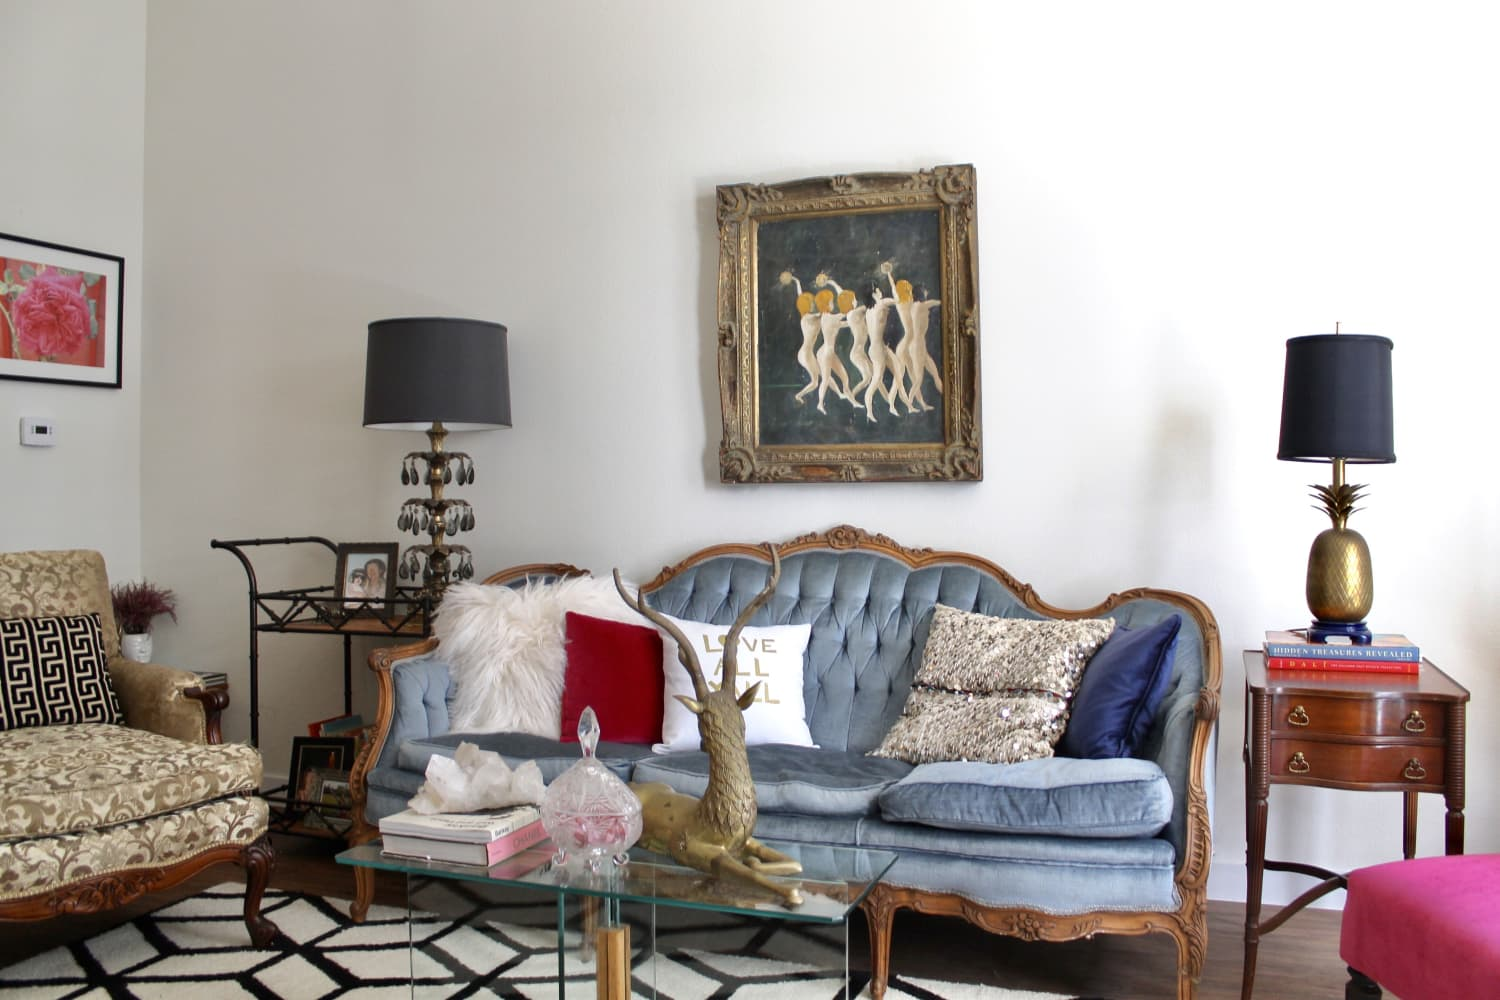 6 Secrets to Finding Vintage Treasures Online, According to Furniture Flippers